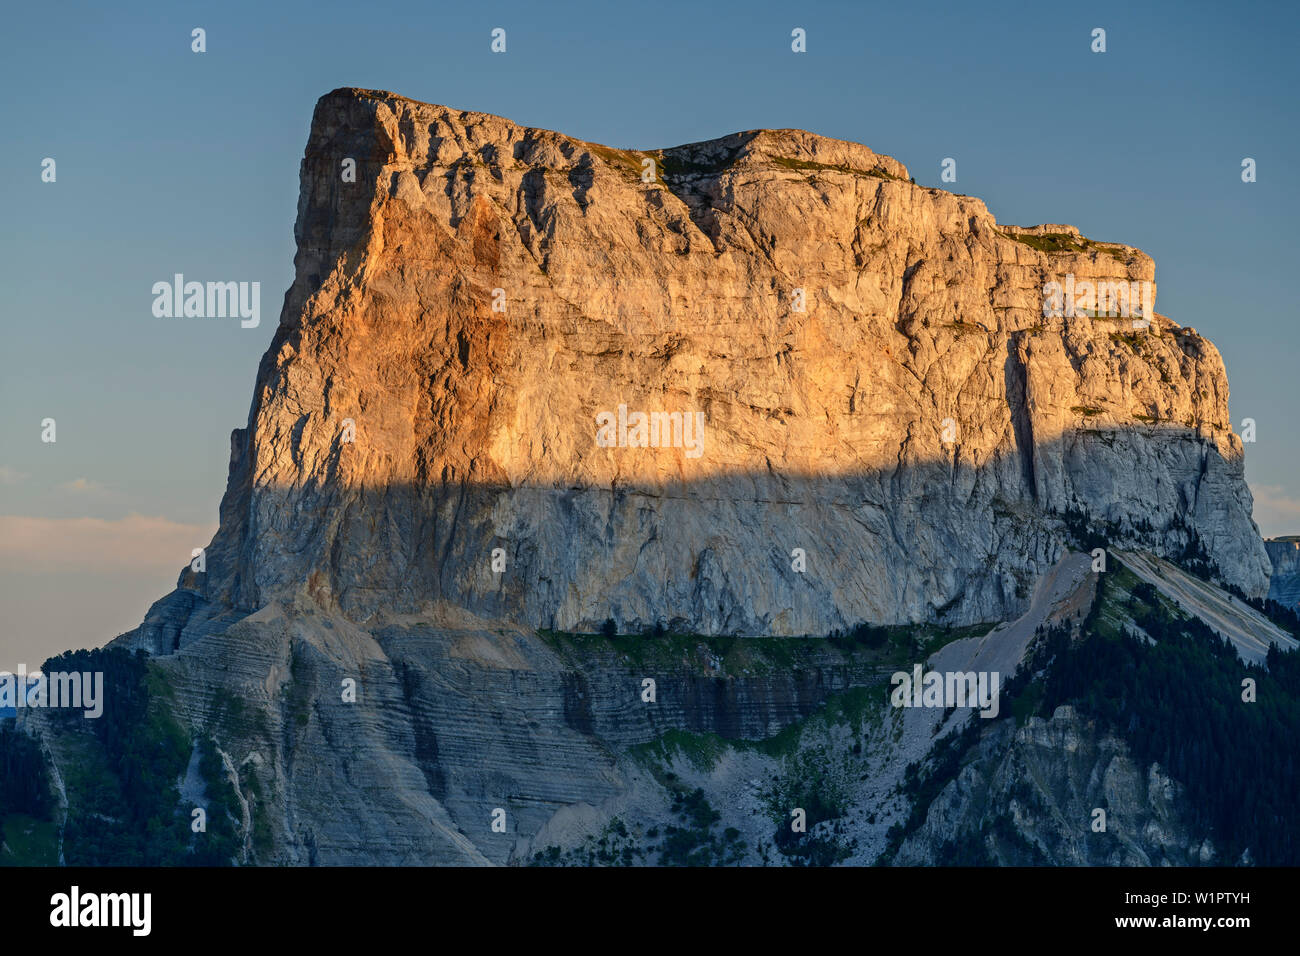 Mont Aiguille in the sunset, from the Grand Brison, Vercors, Dauphine, Dauphine, Isère, France - Stock Image